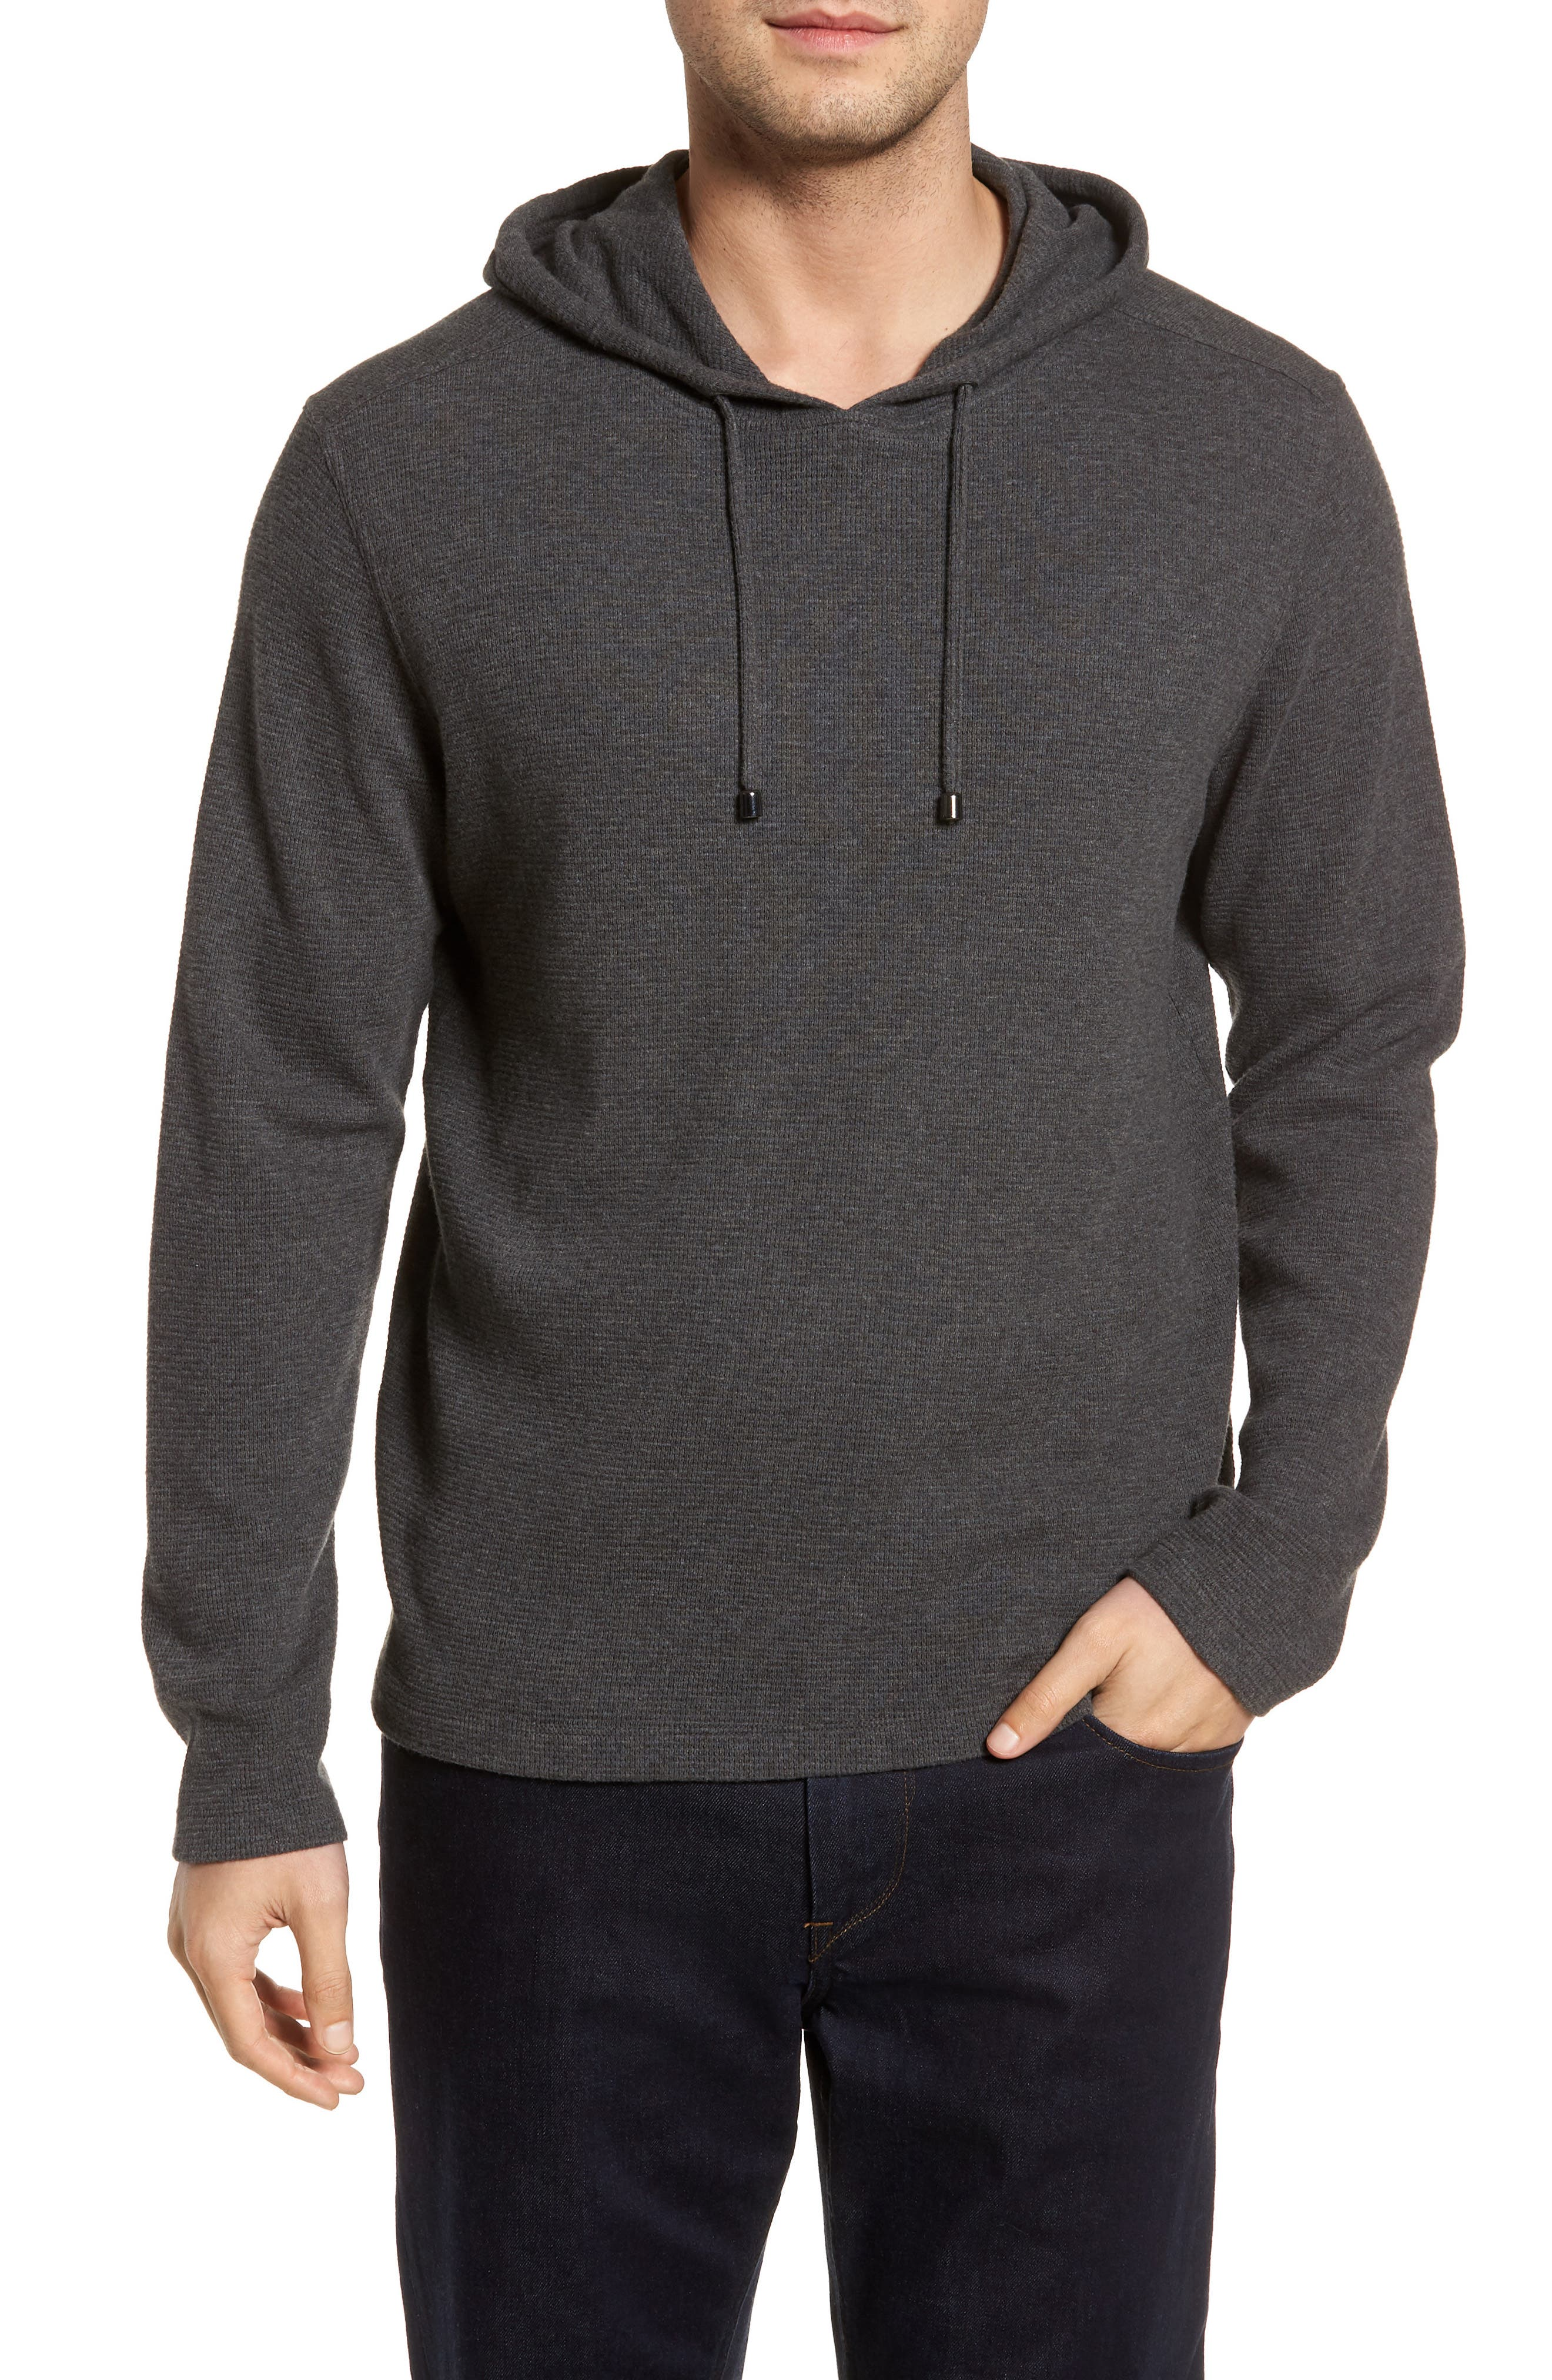 Wilson Pullover Hoodie,                         Main,                         color, Charcoal